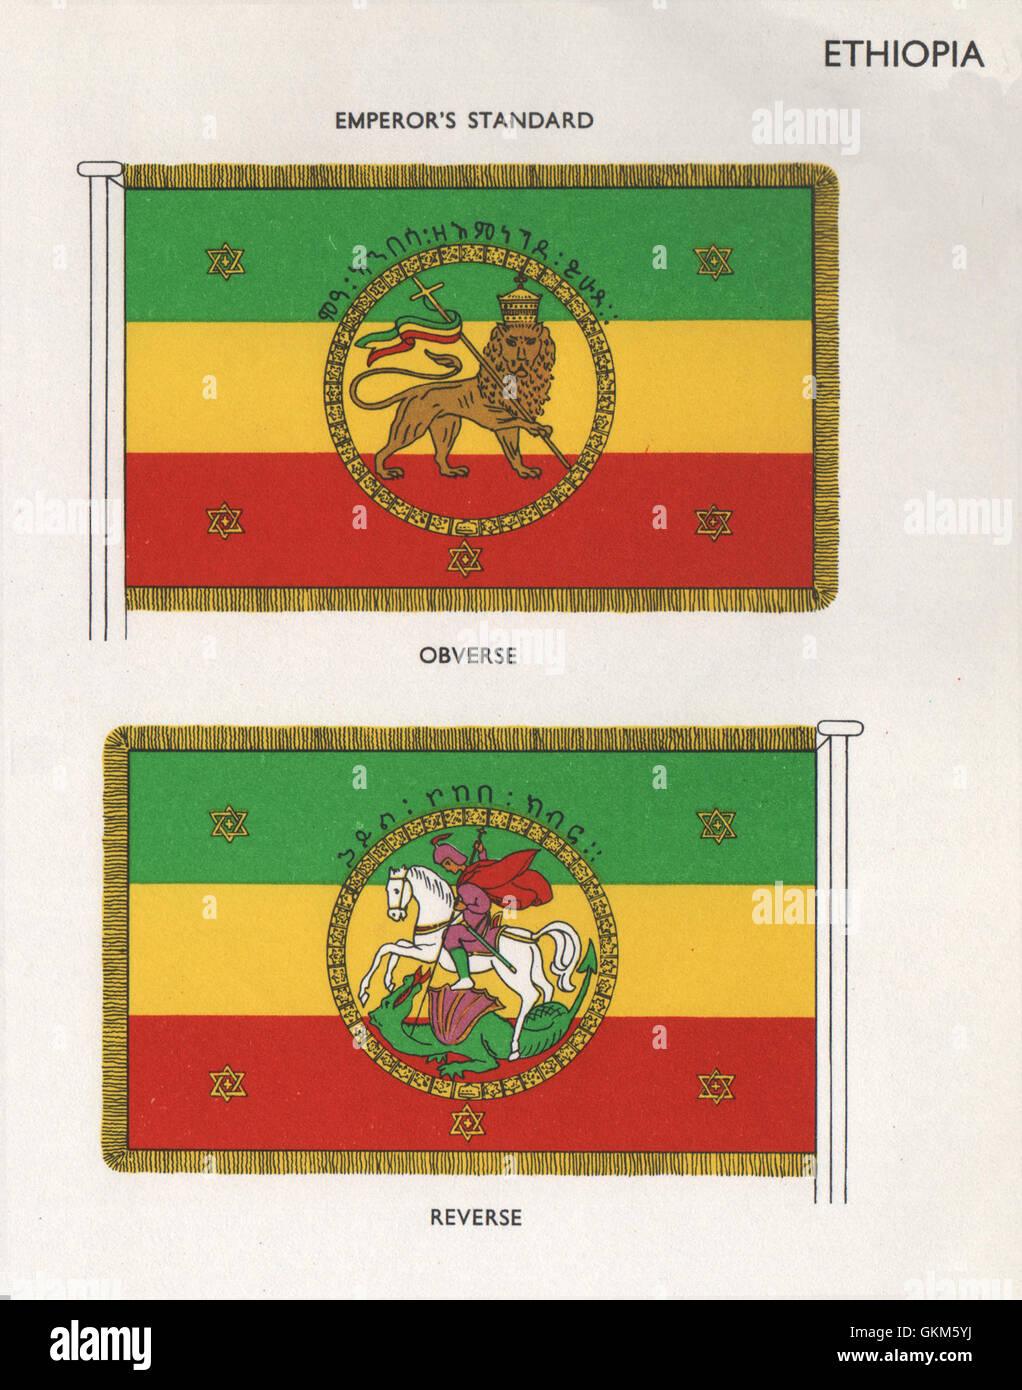 ETHIOPIA FLAGS. Emperor's Standard. Obverse. Reverse, vintage print 1958 - Stock Image